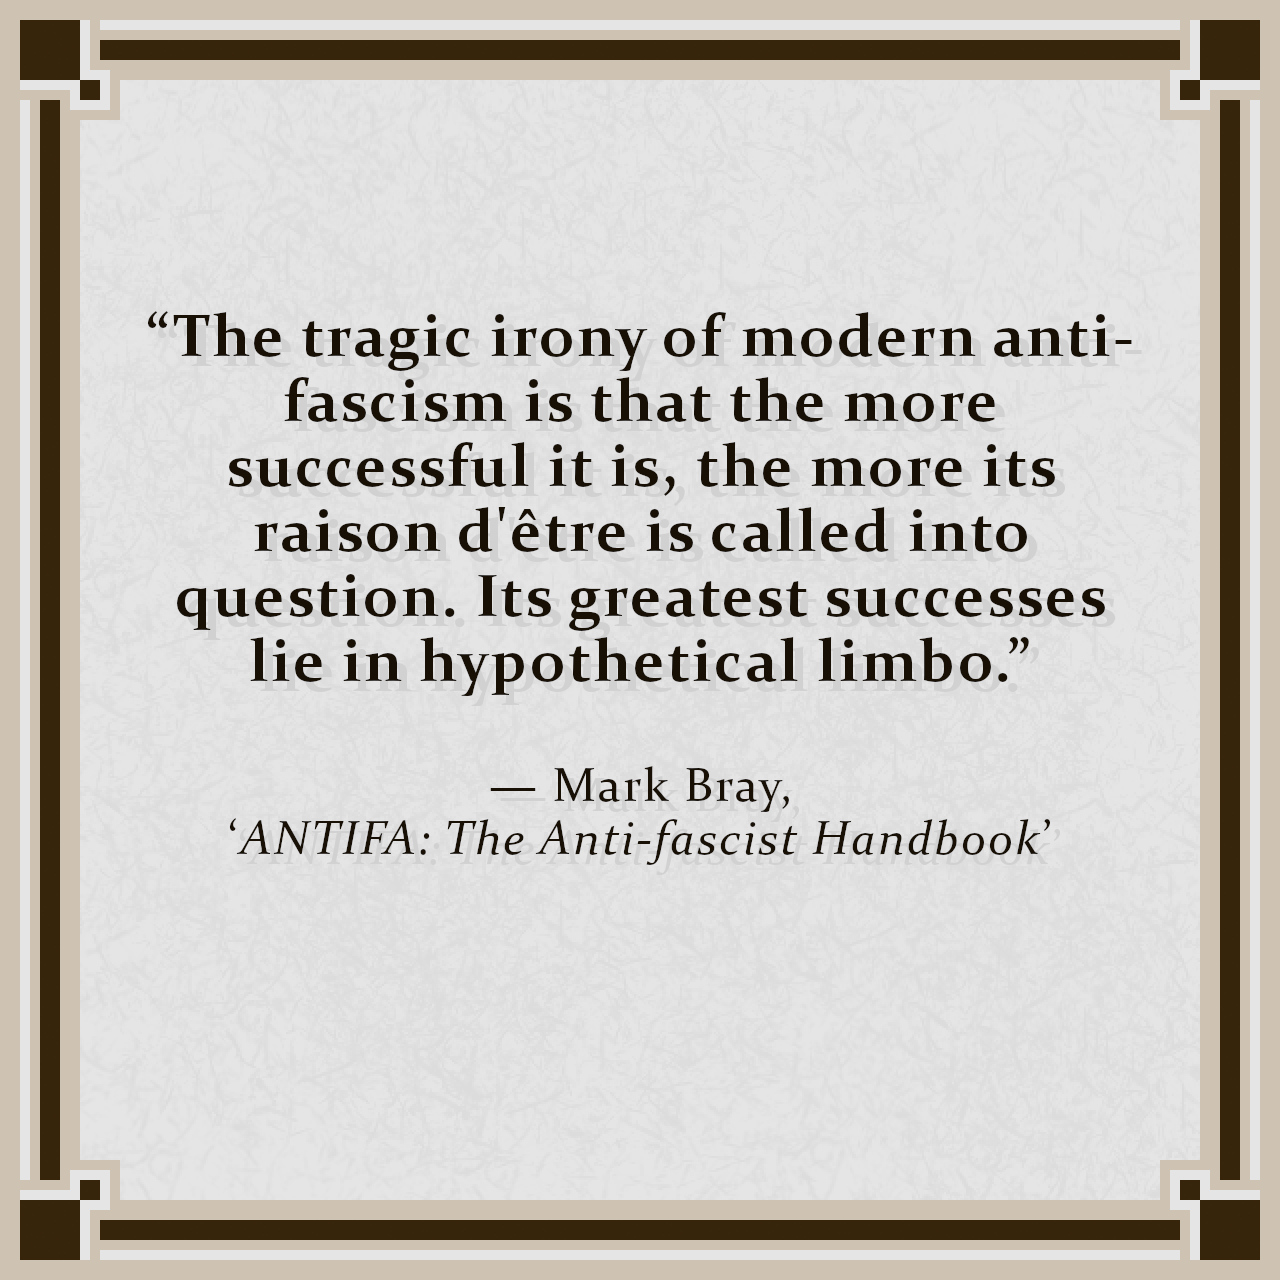 """""""The tragic irony of modern anti-fascism is that the more successful it is, the more its raison d'être is called into question. Its greatest successes lie in hypothetical limbo."""" — Mark Bray, 'ANTIFA: The Anti-fascist Handbook'"""